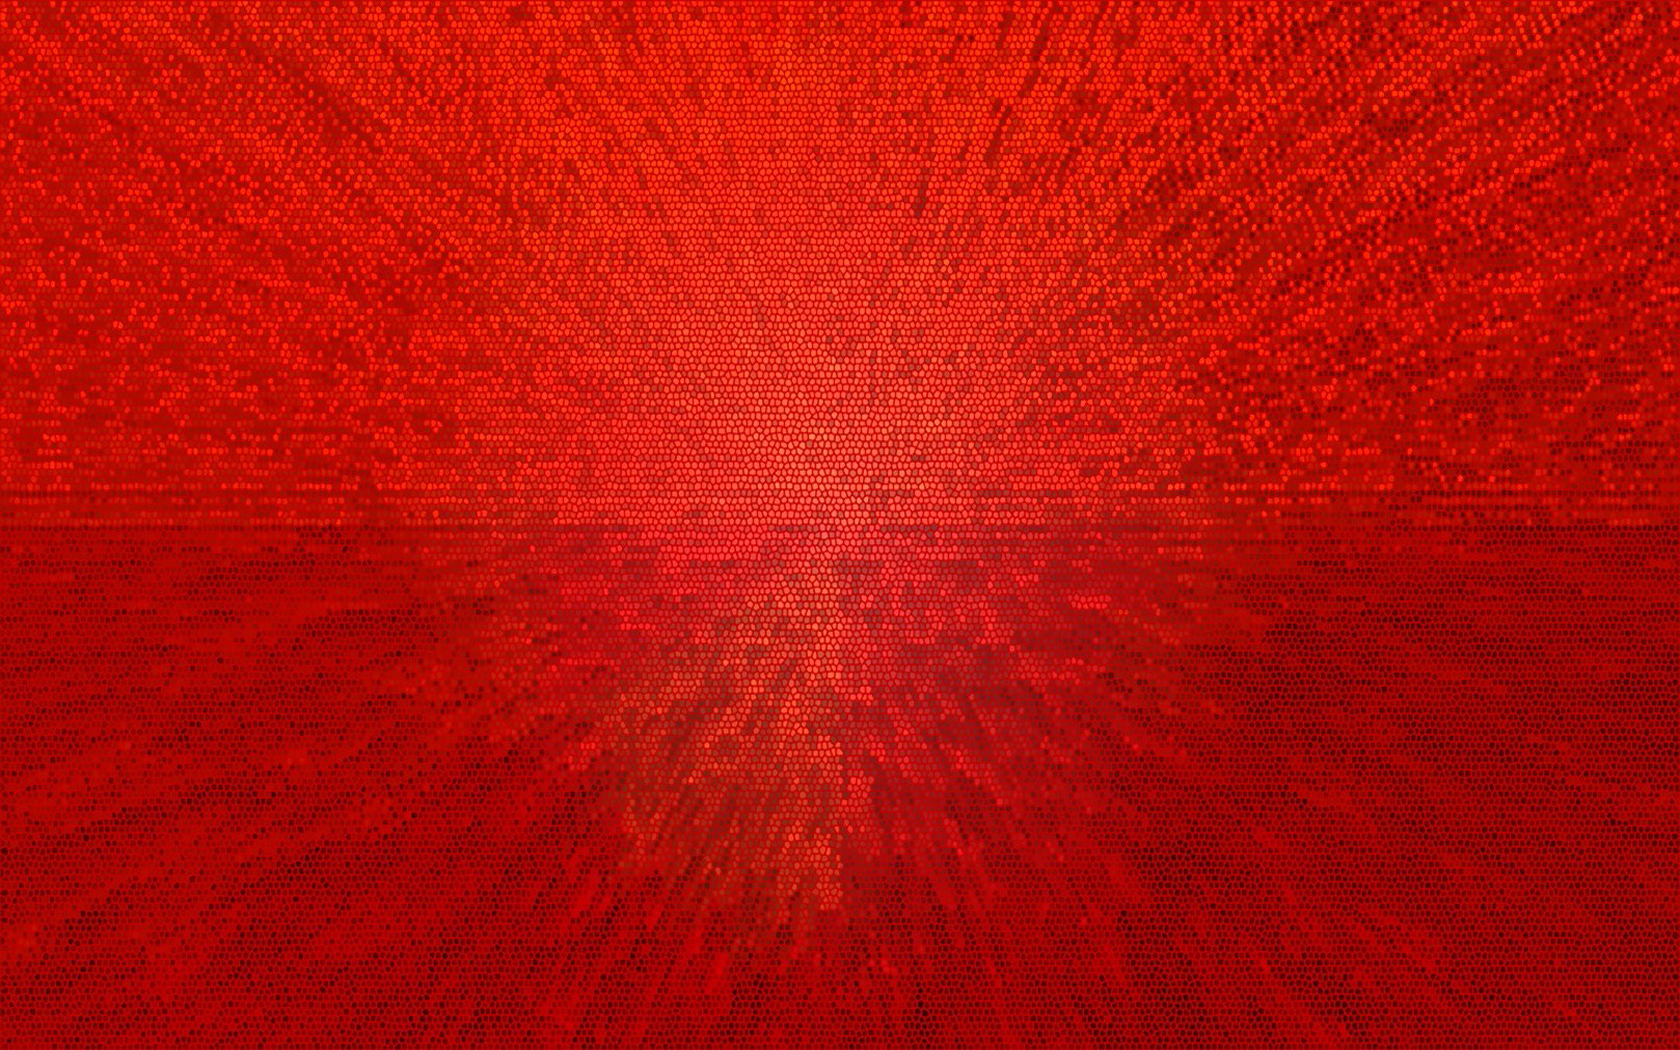 Red Background Wallpaper